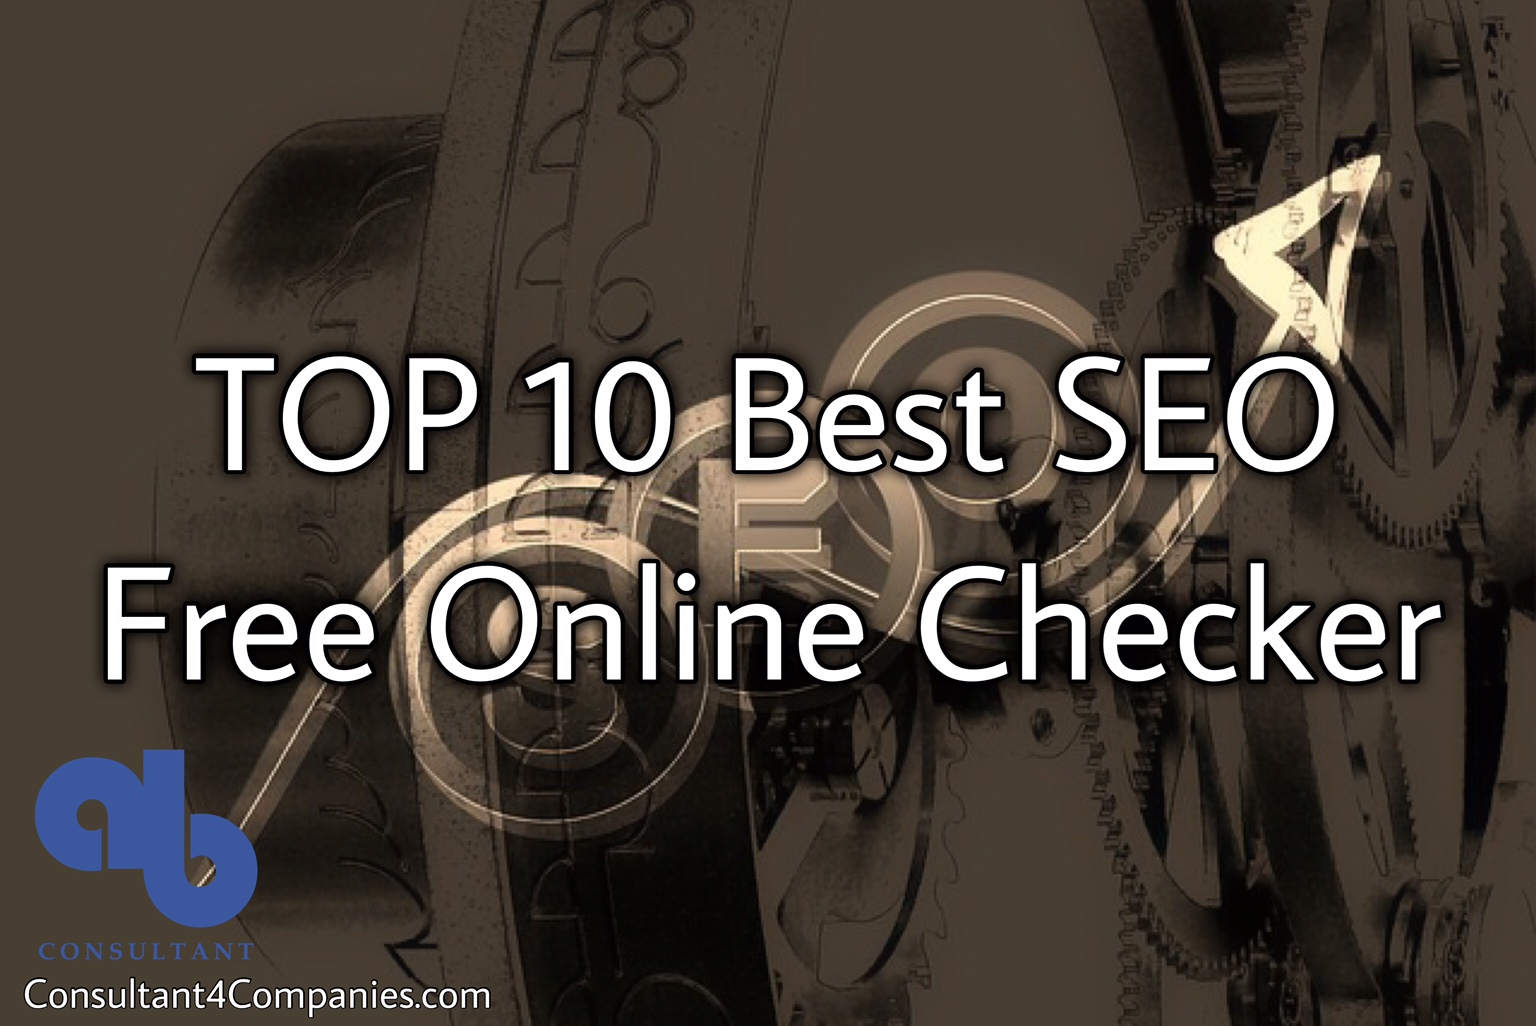 TOP 10 Best SEO Free Online Checker